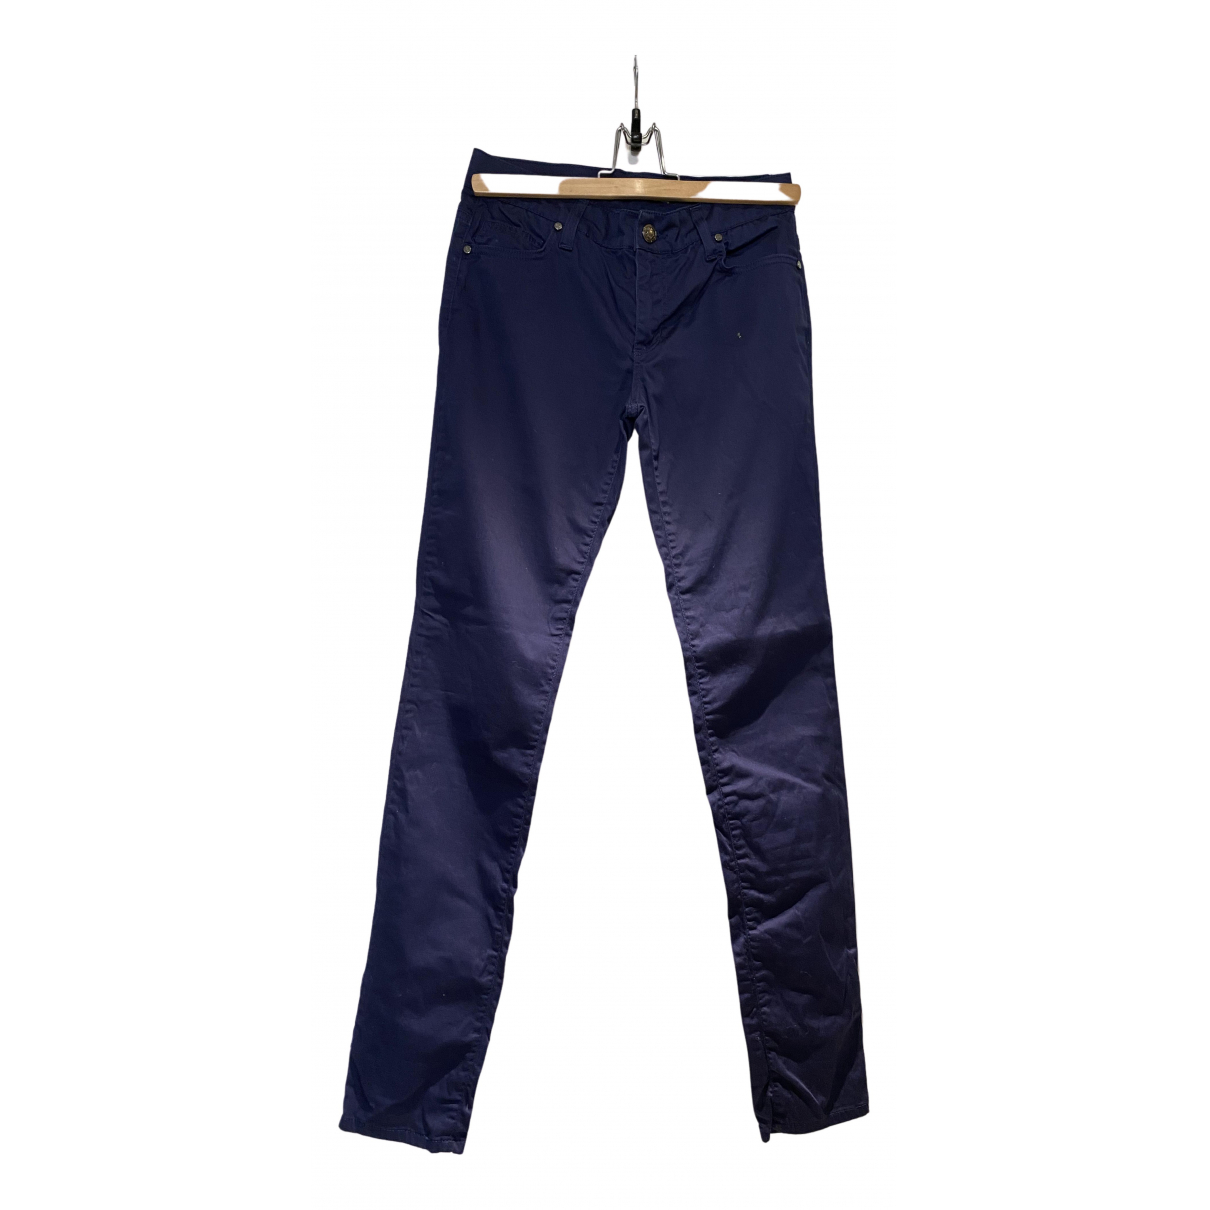 Versace Jeans N Navy Cotton Trousers for Women 8 UK